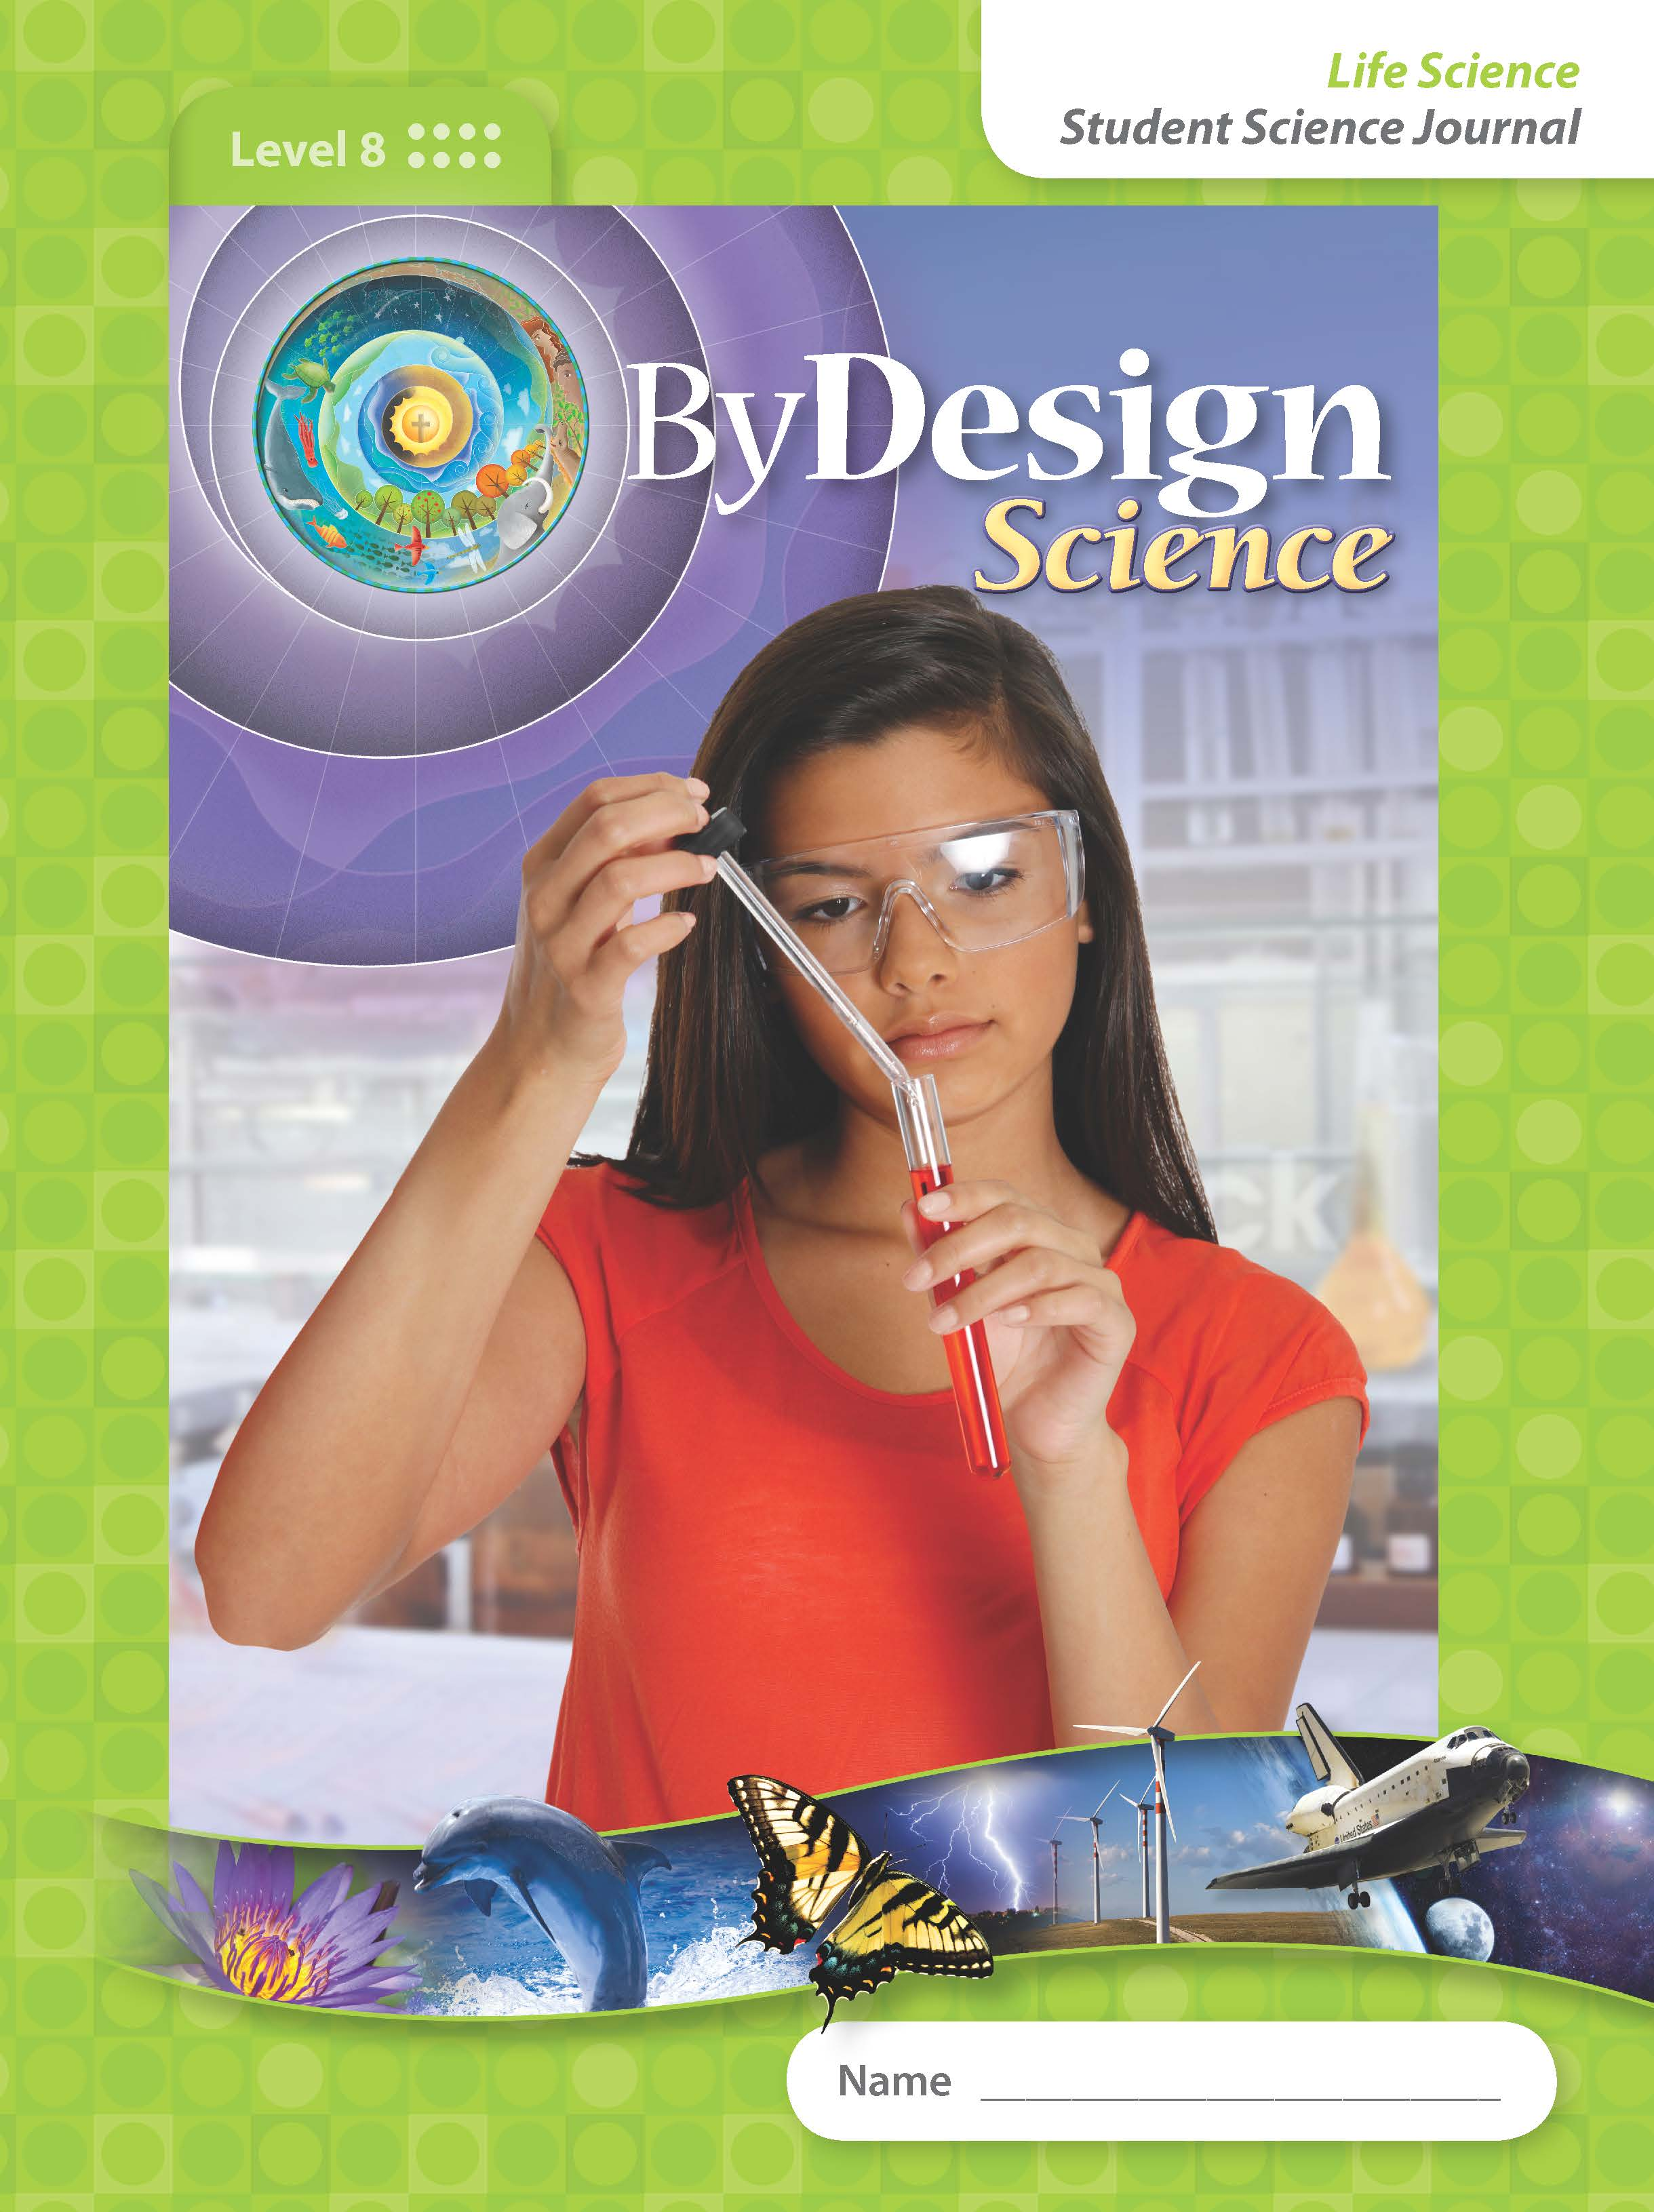 By Design Grade 8 Student Science Journal 1 Year License